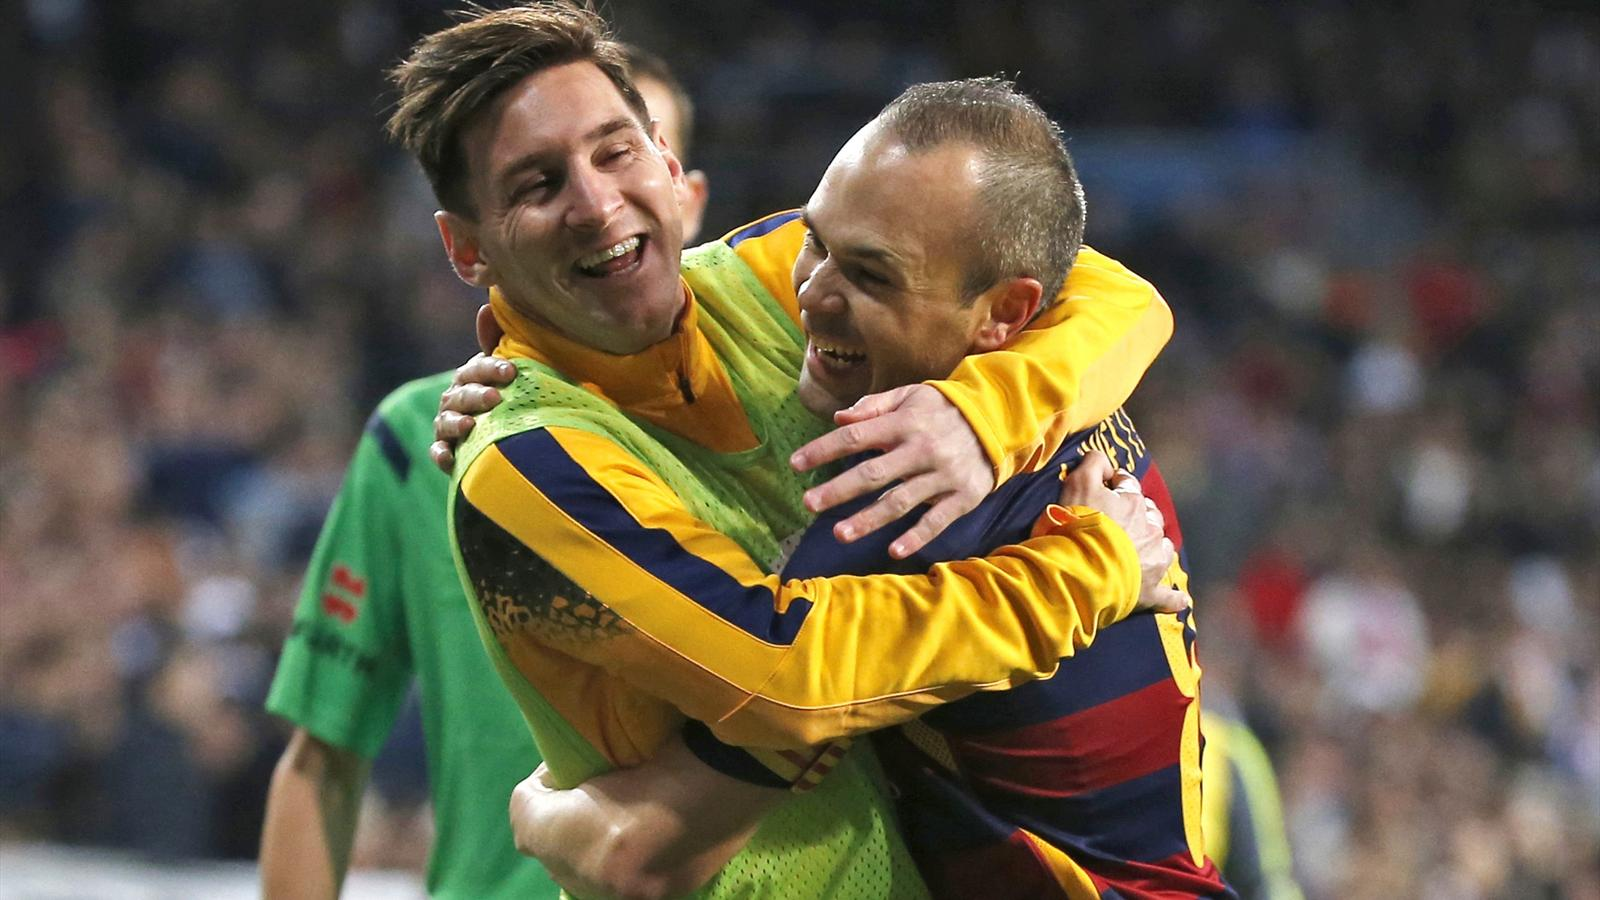 Barcelona's Lionel Messi and Andres Iniesta celebrate a goal against Real Madrid